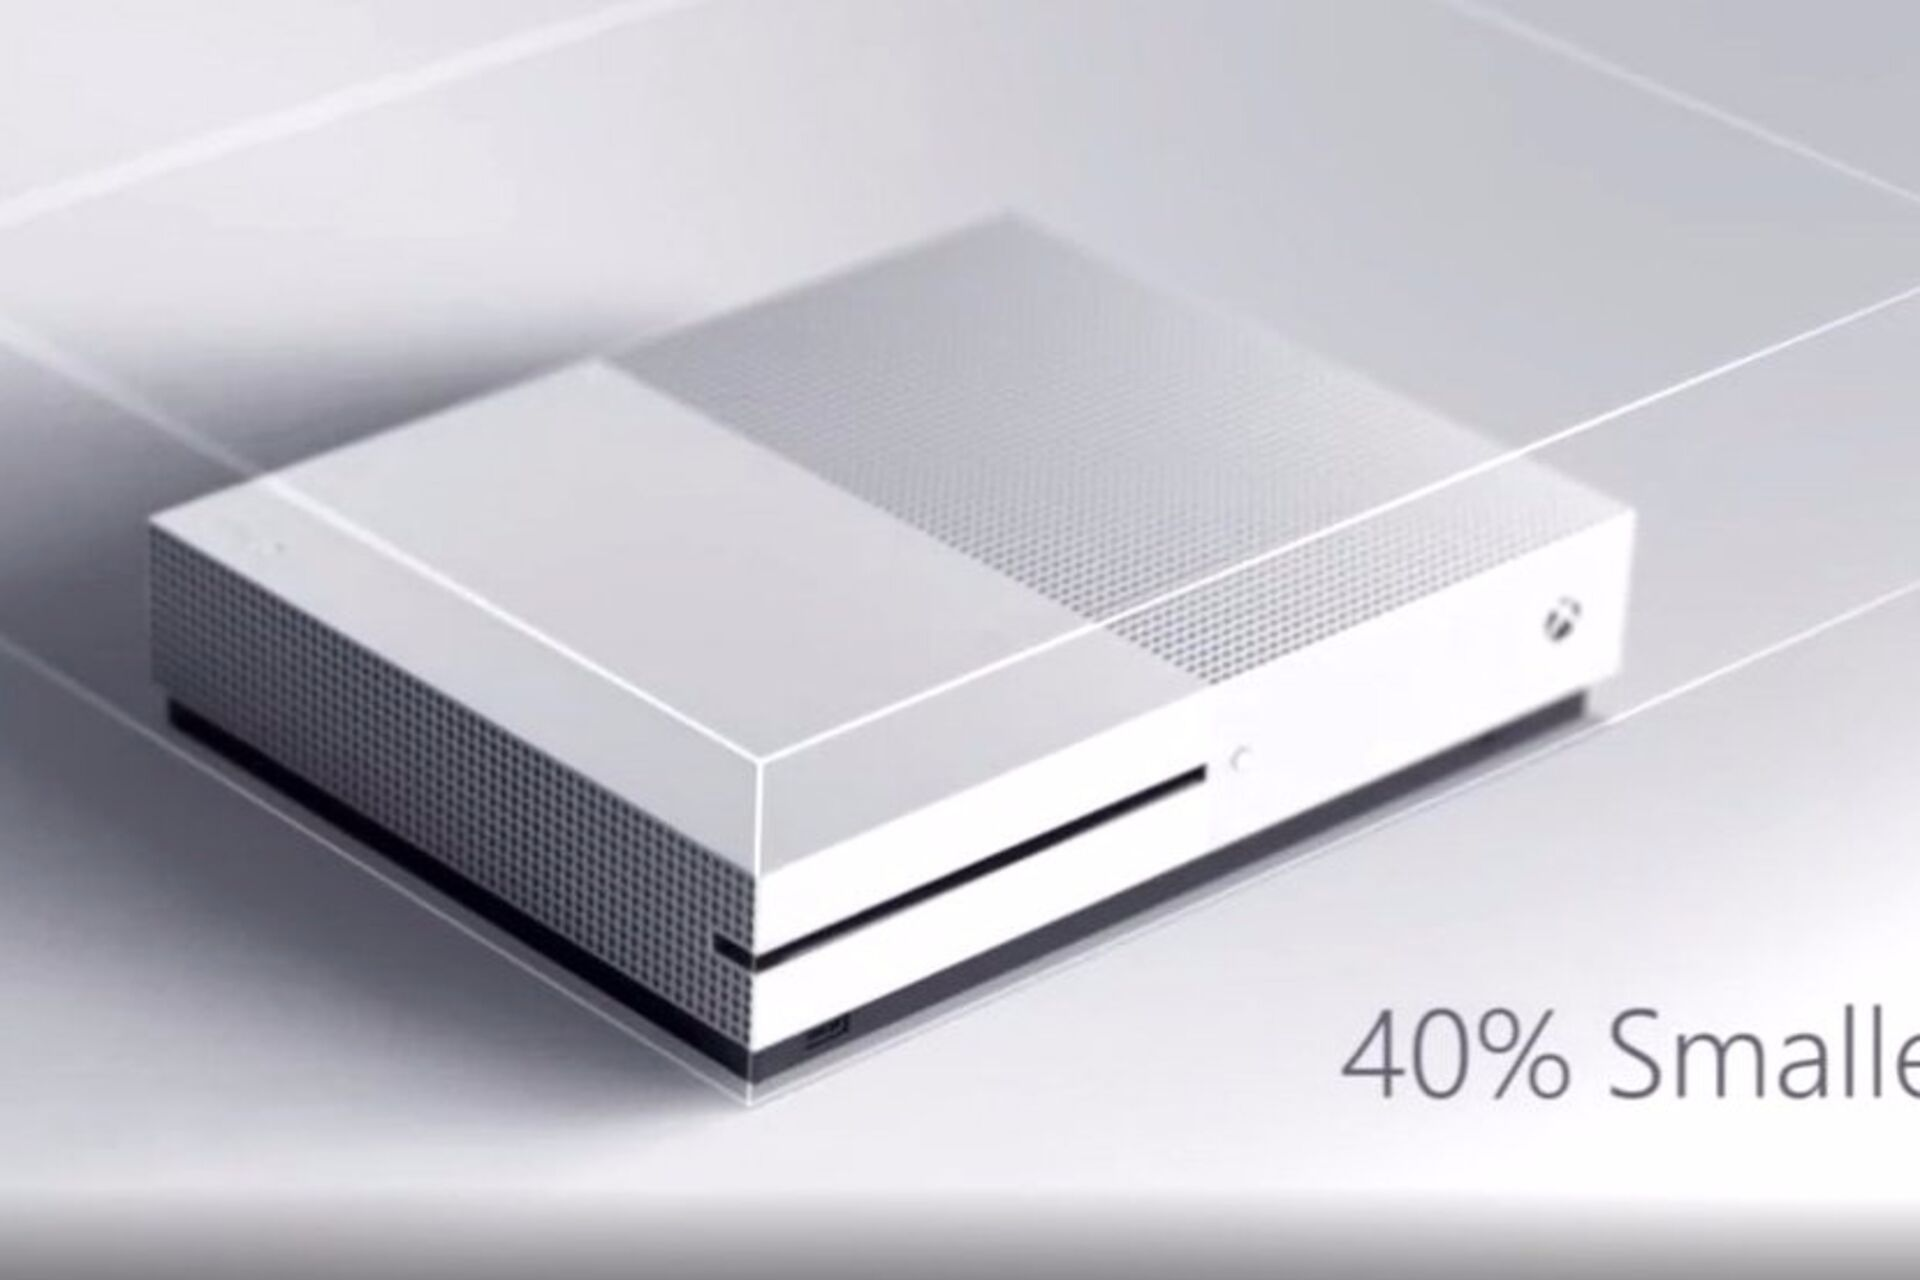 Microsoft Announces The Xbox One S Price And Release Date Eurogamer Net